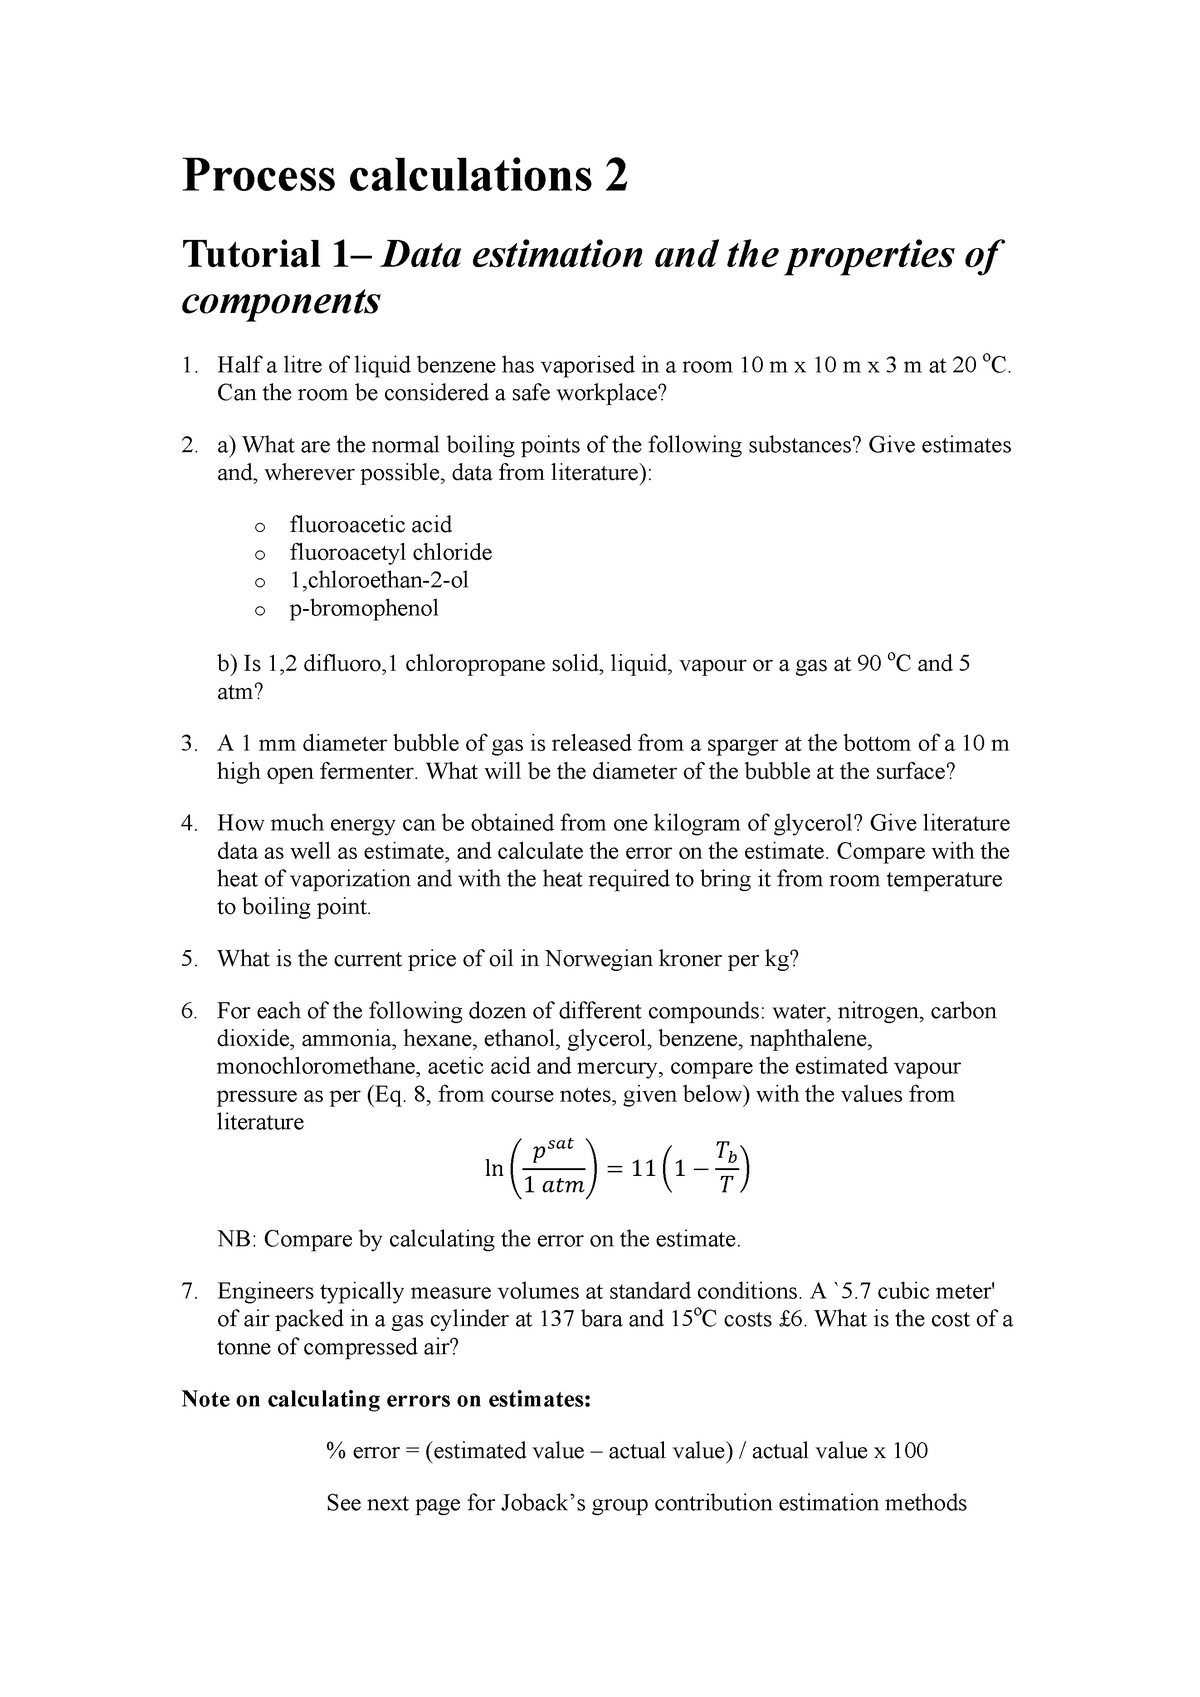 Process Calculations 2 Tutorial Questions and Solutions